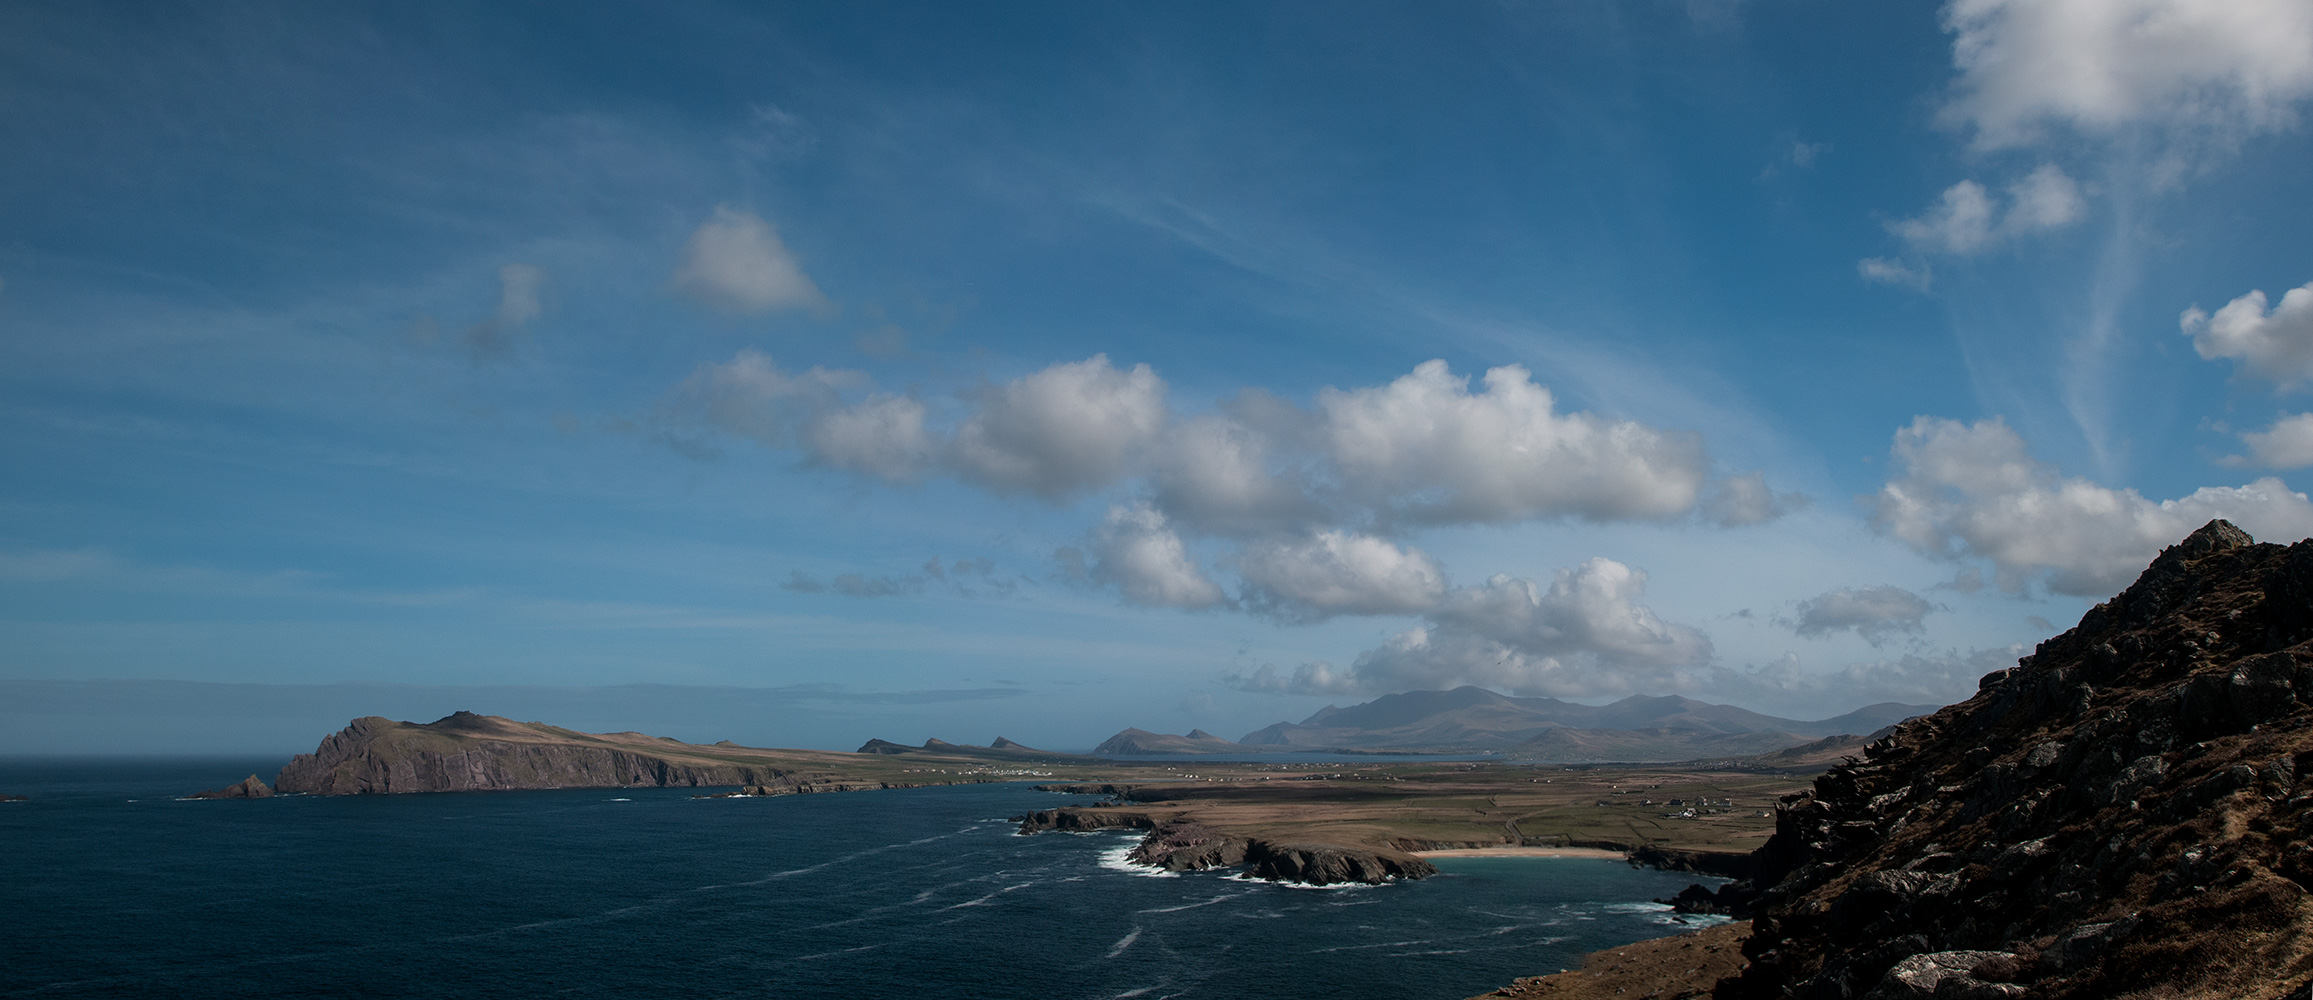 Clogher Head, County Kerry, Ireland